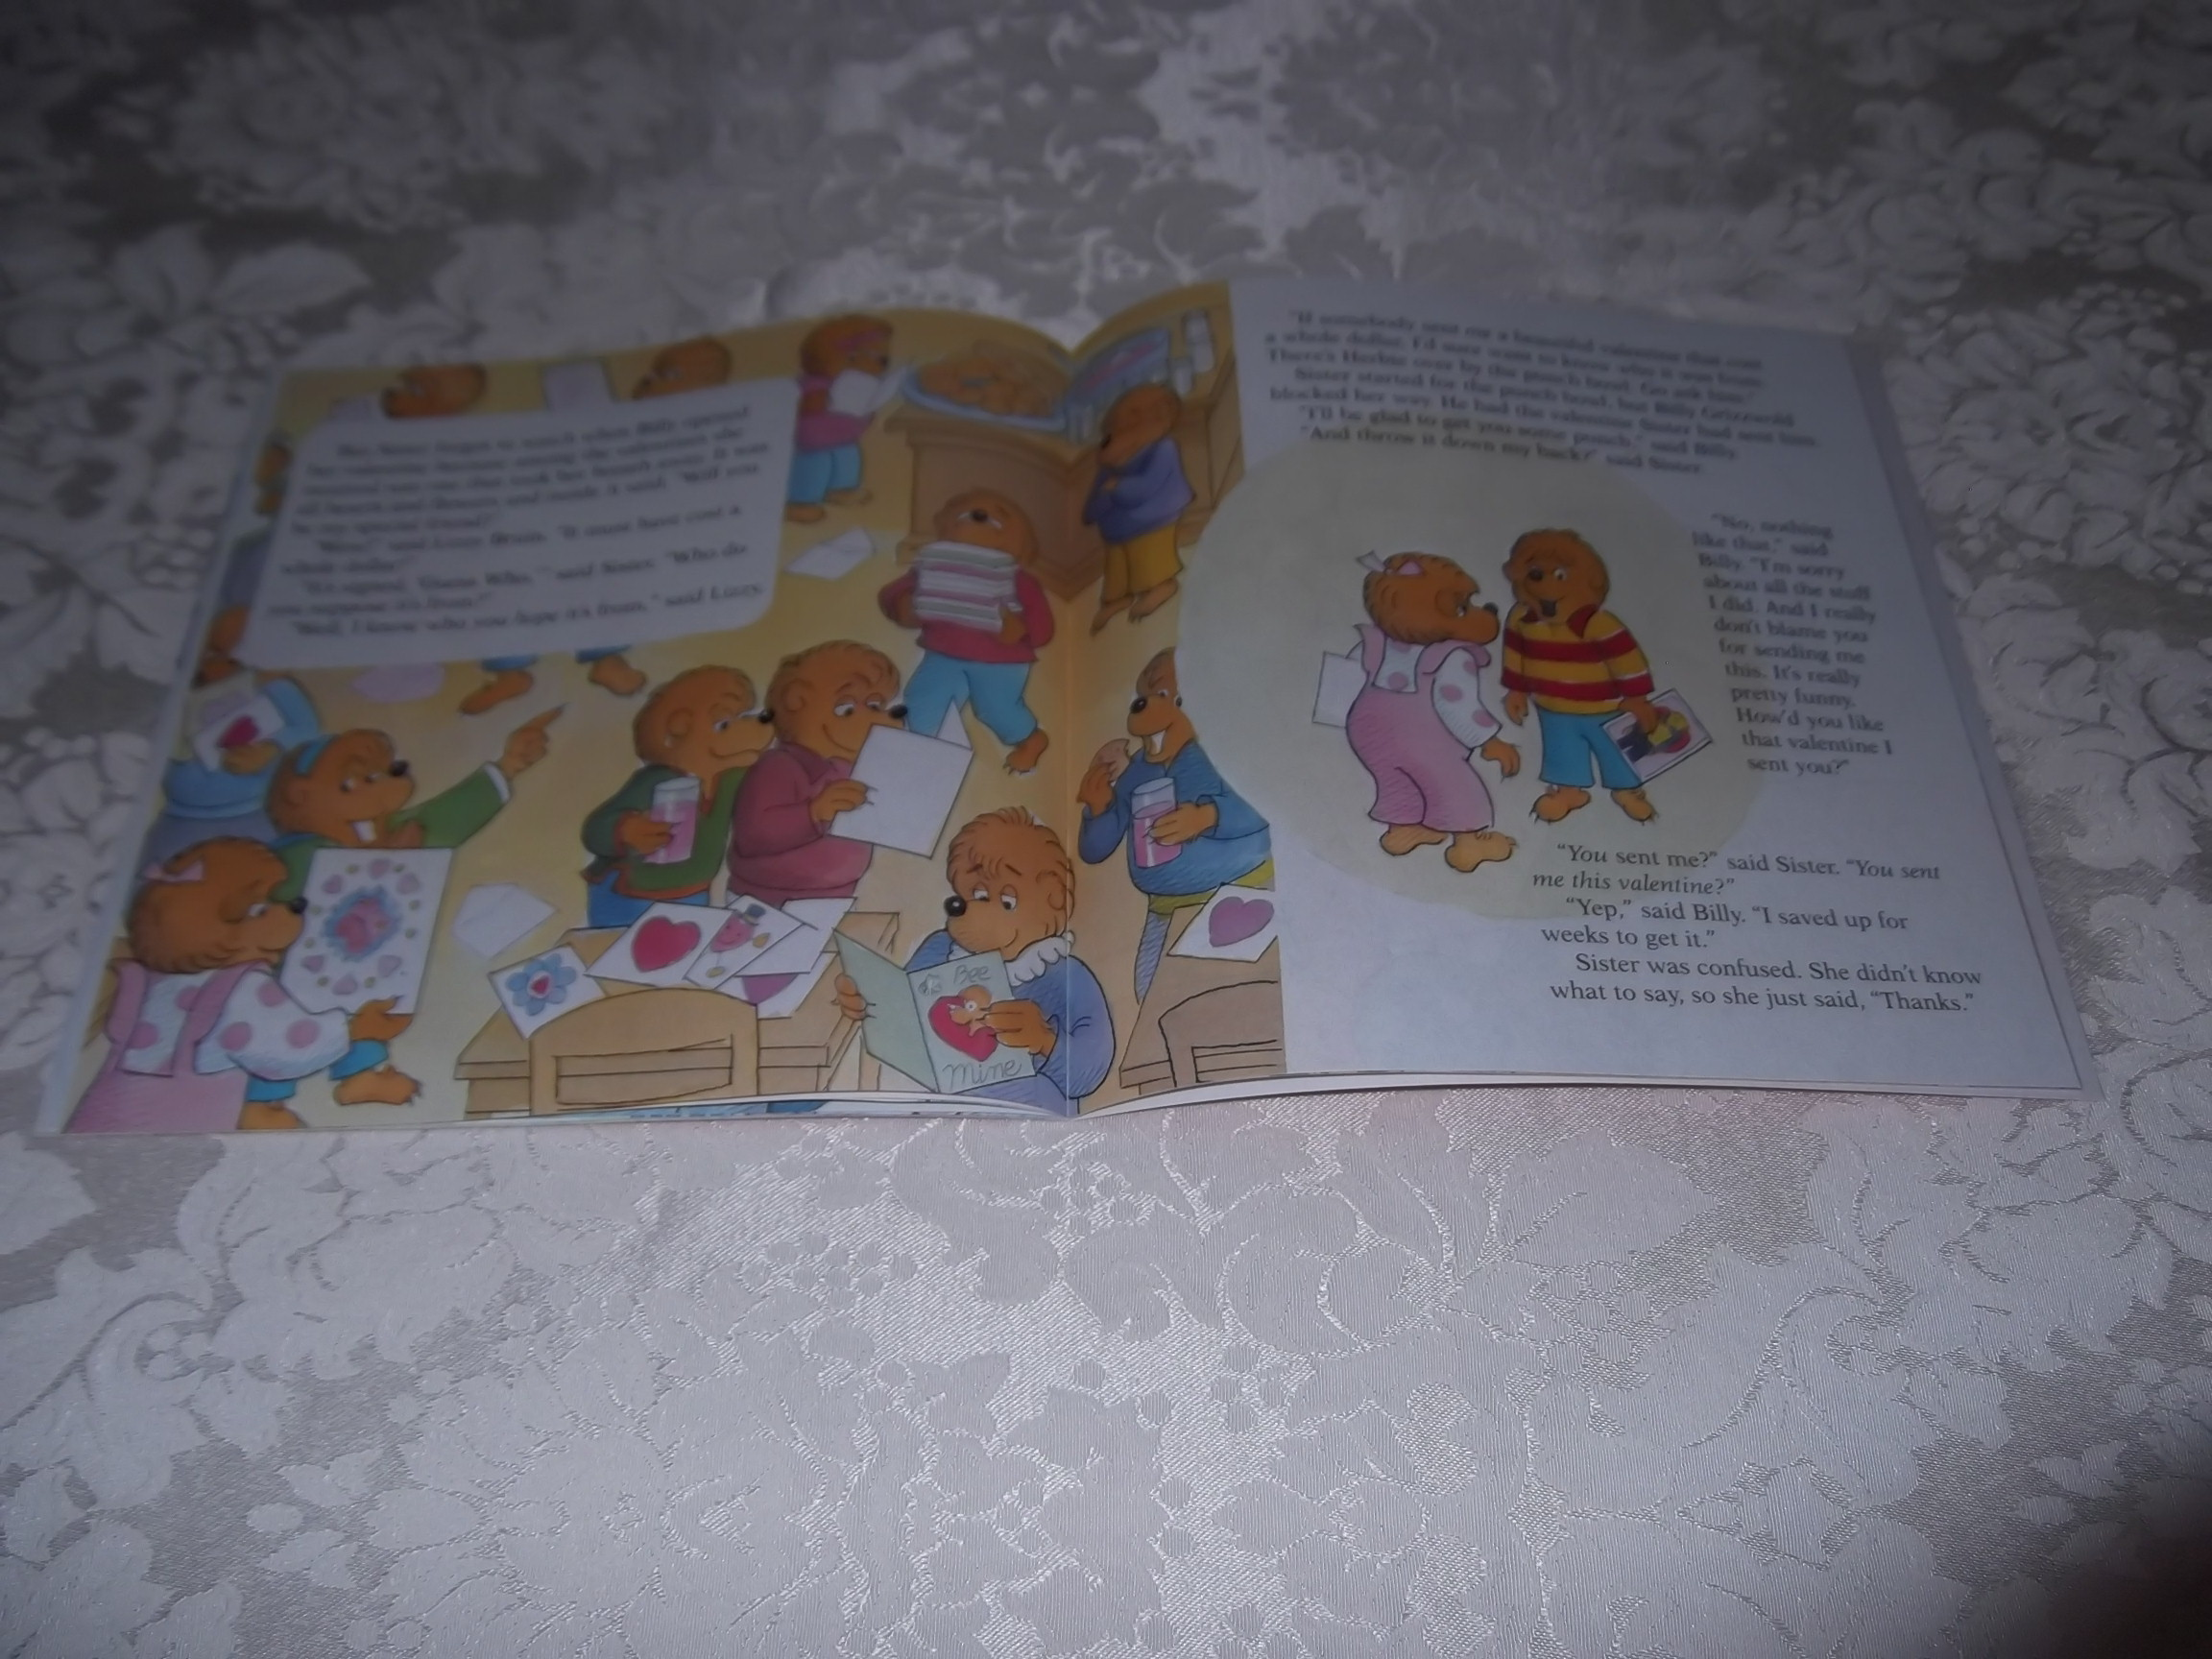 Image 3 of The Berenstain Bears' Funny Valentine Stan & Jan Berenstain Brand New Softcover